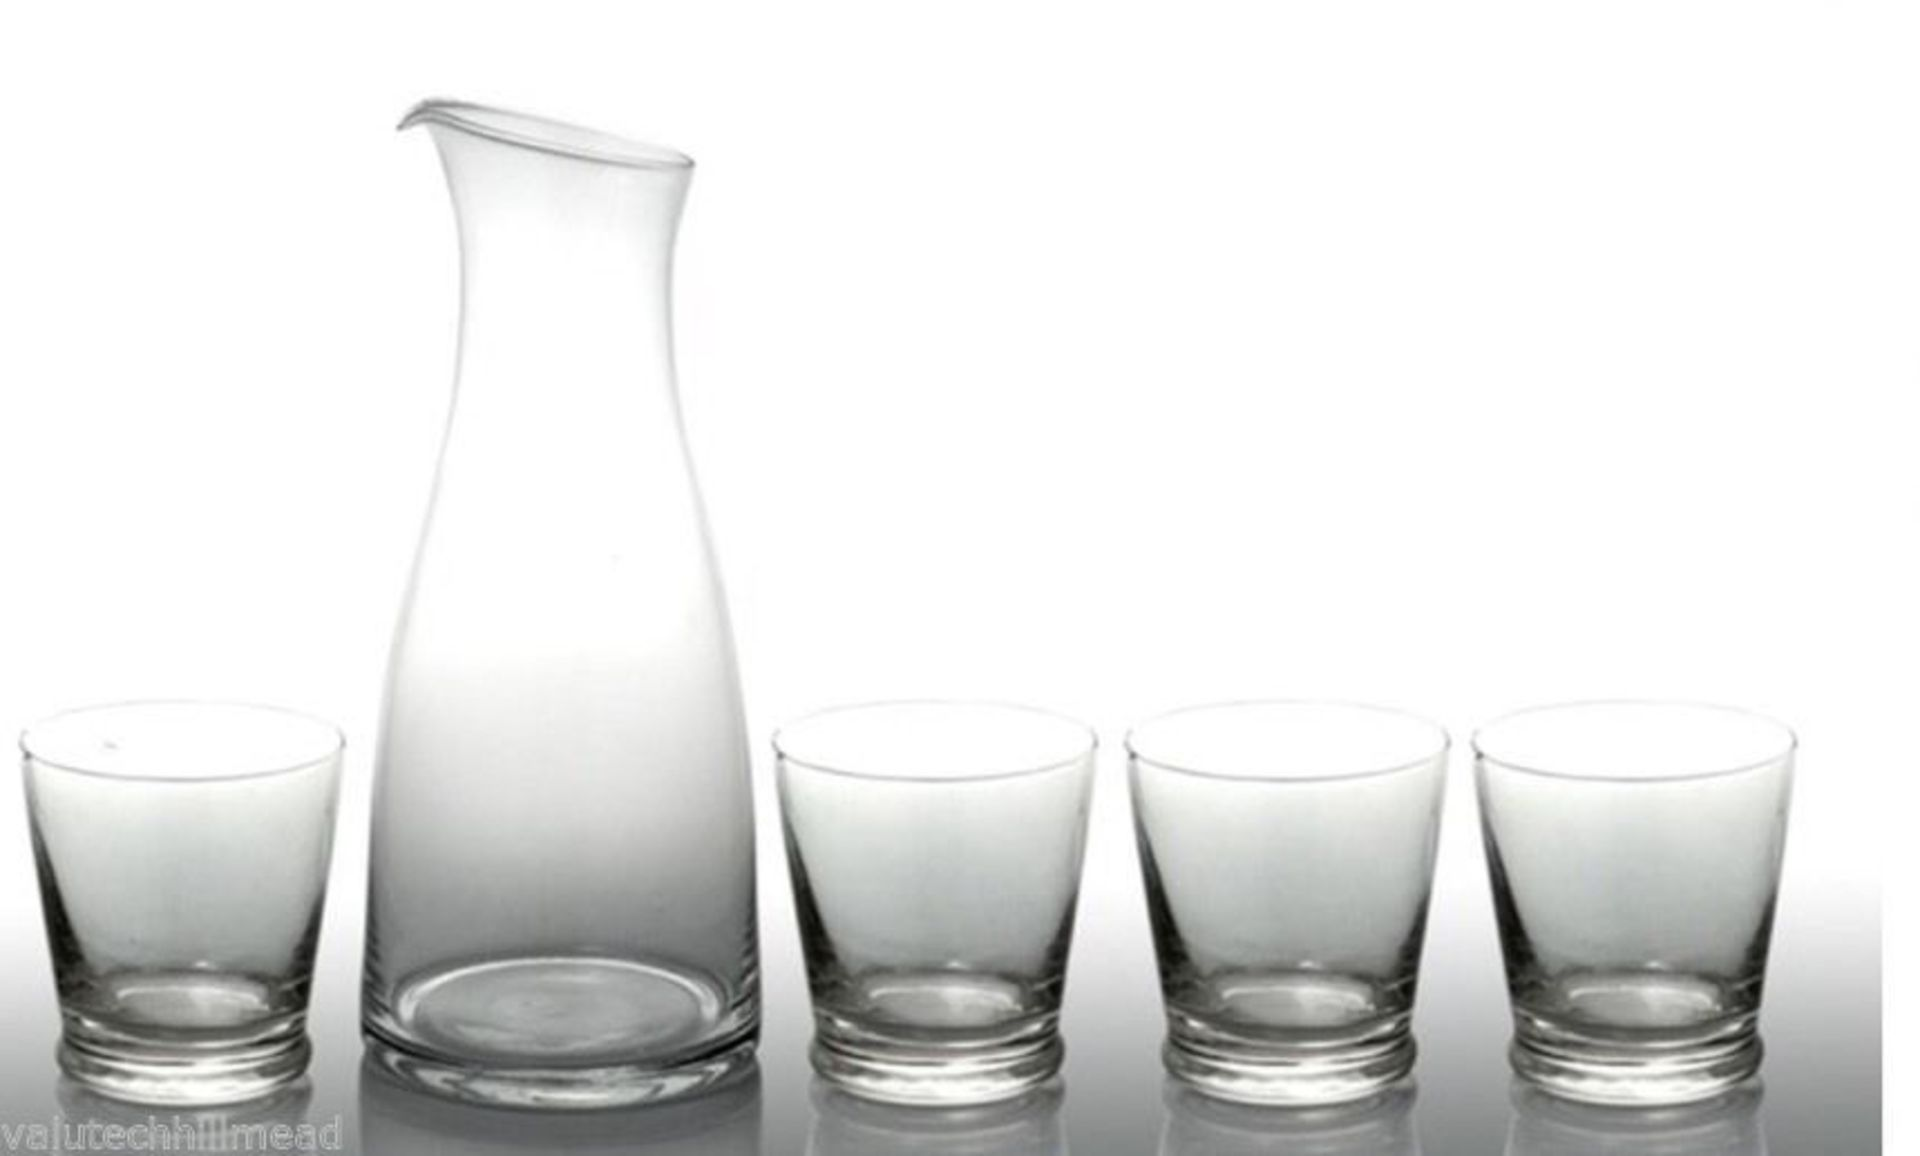 + VAT Brand New Bistro & Co. 1.2L Glass Carafe With 4 Tumblers £19.89 at shoptail